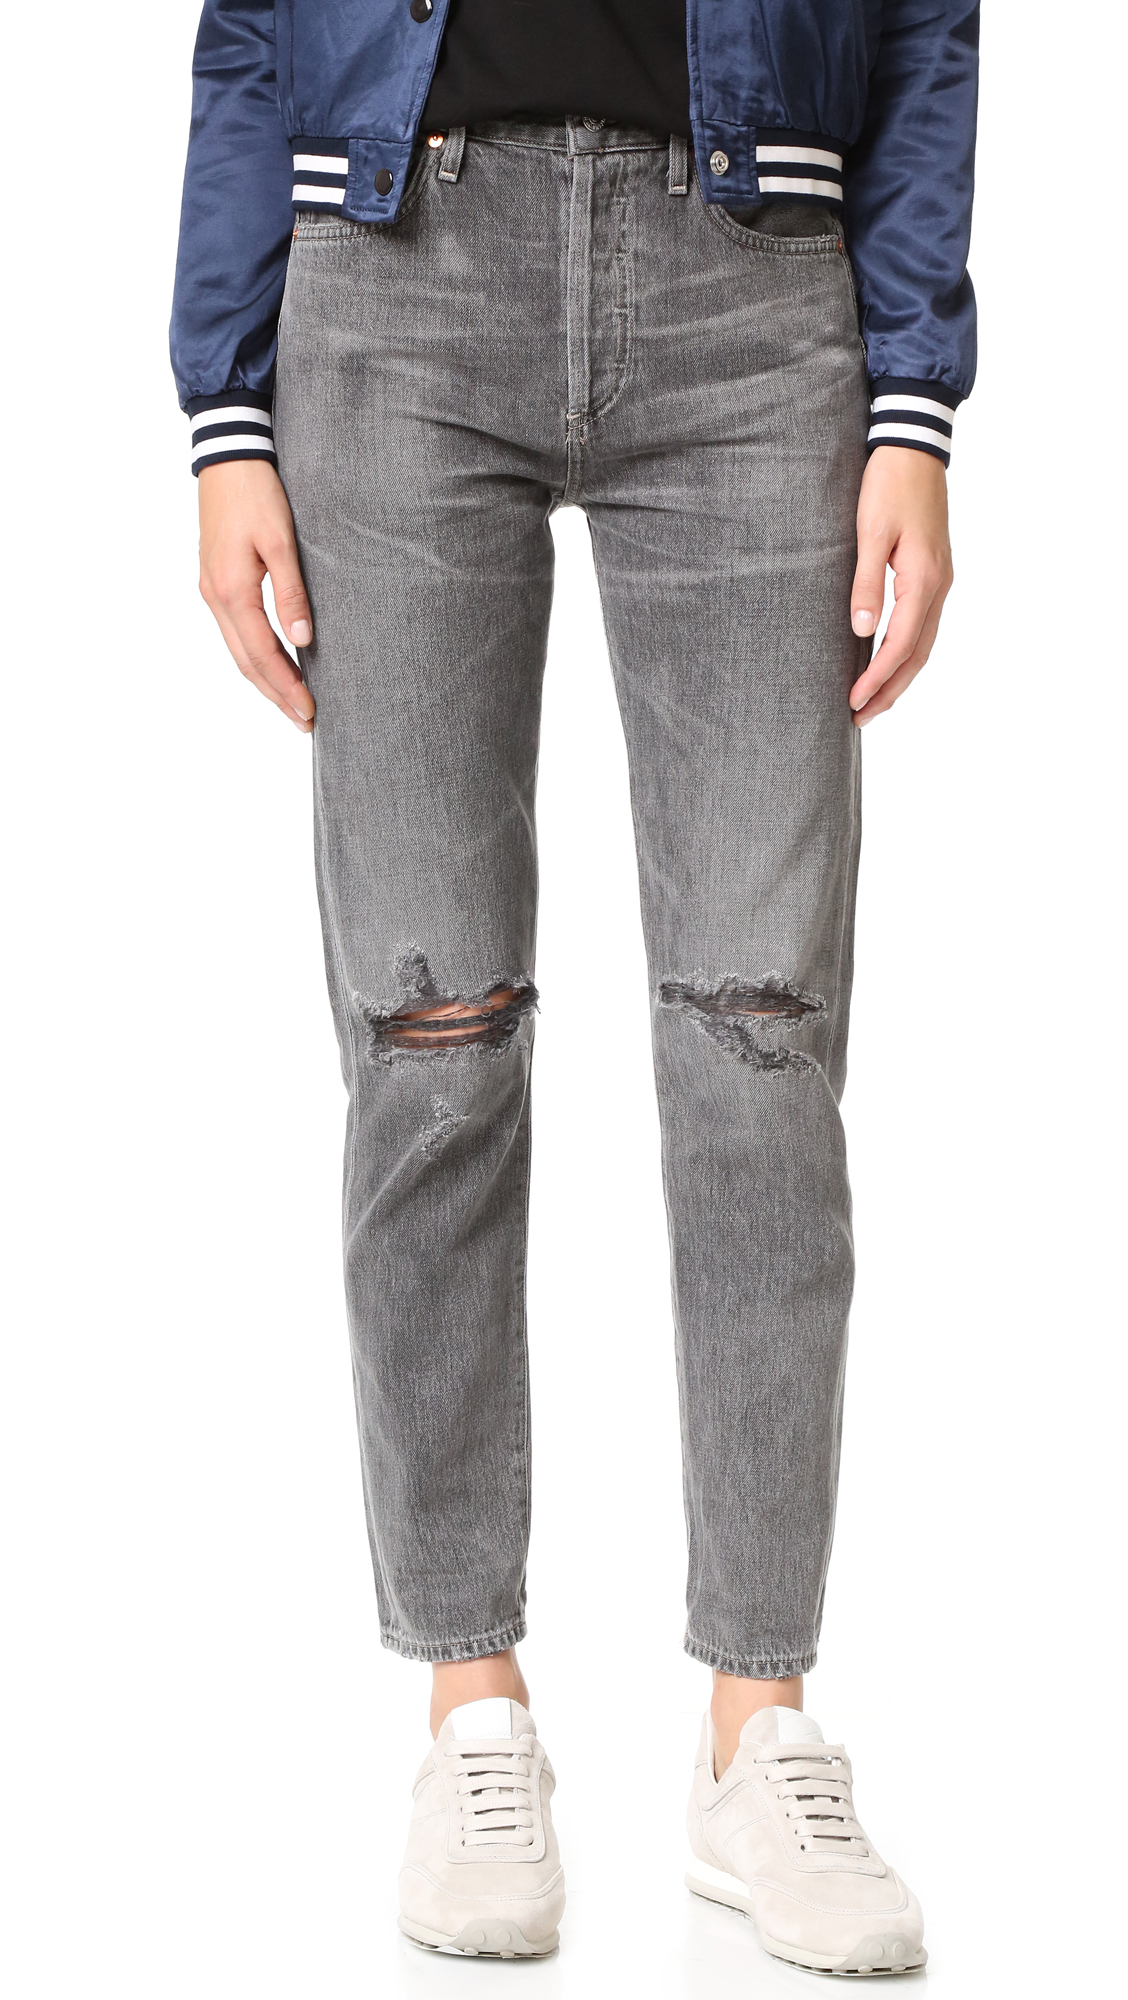 Citizens Of Humanity Liya High Rise Jeans - Extreme at Shopbop